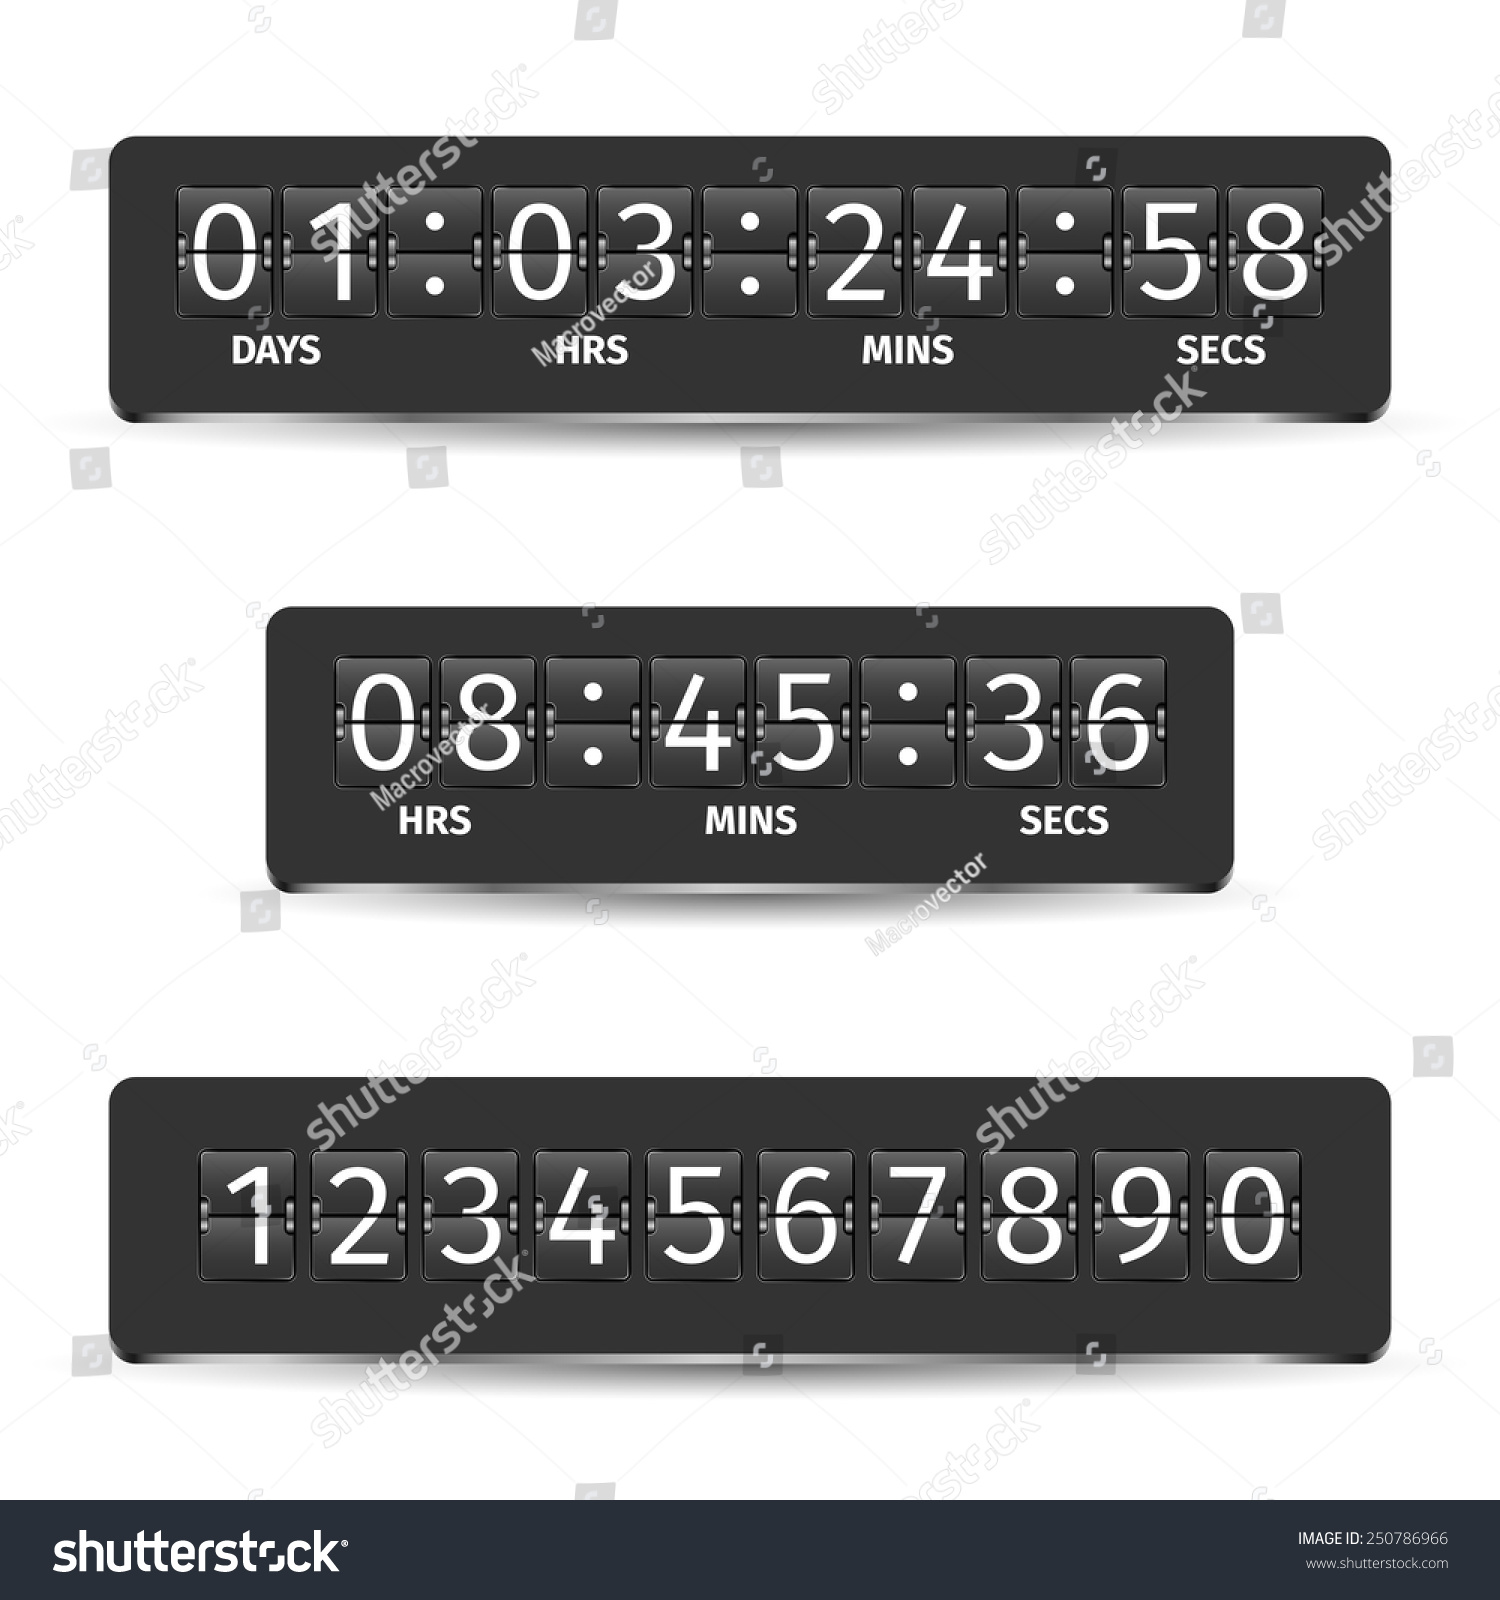 Countdown Clock Timer Analog Display Mechanical Stock ...